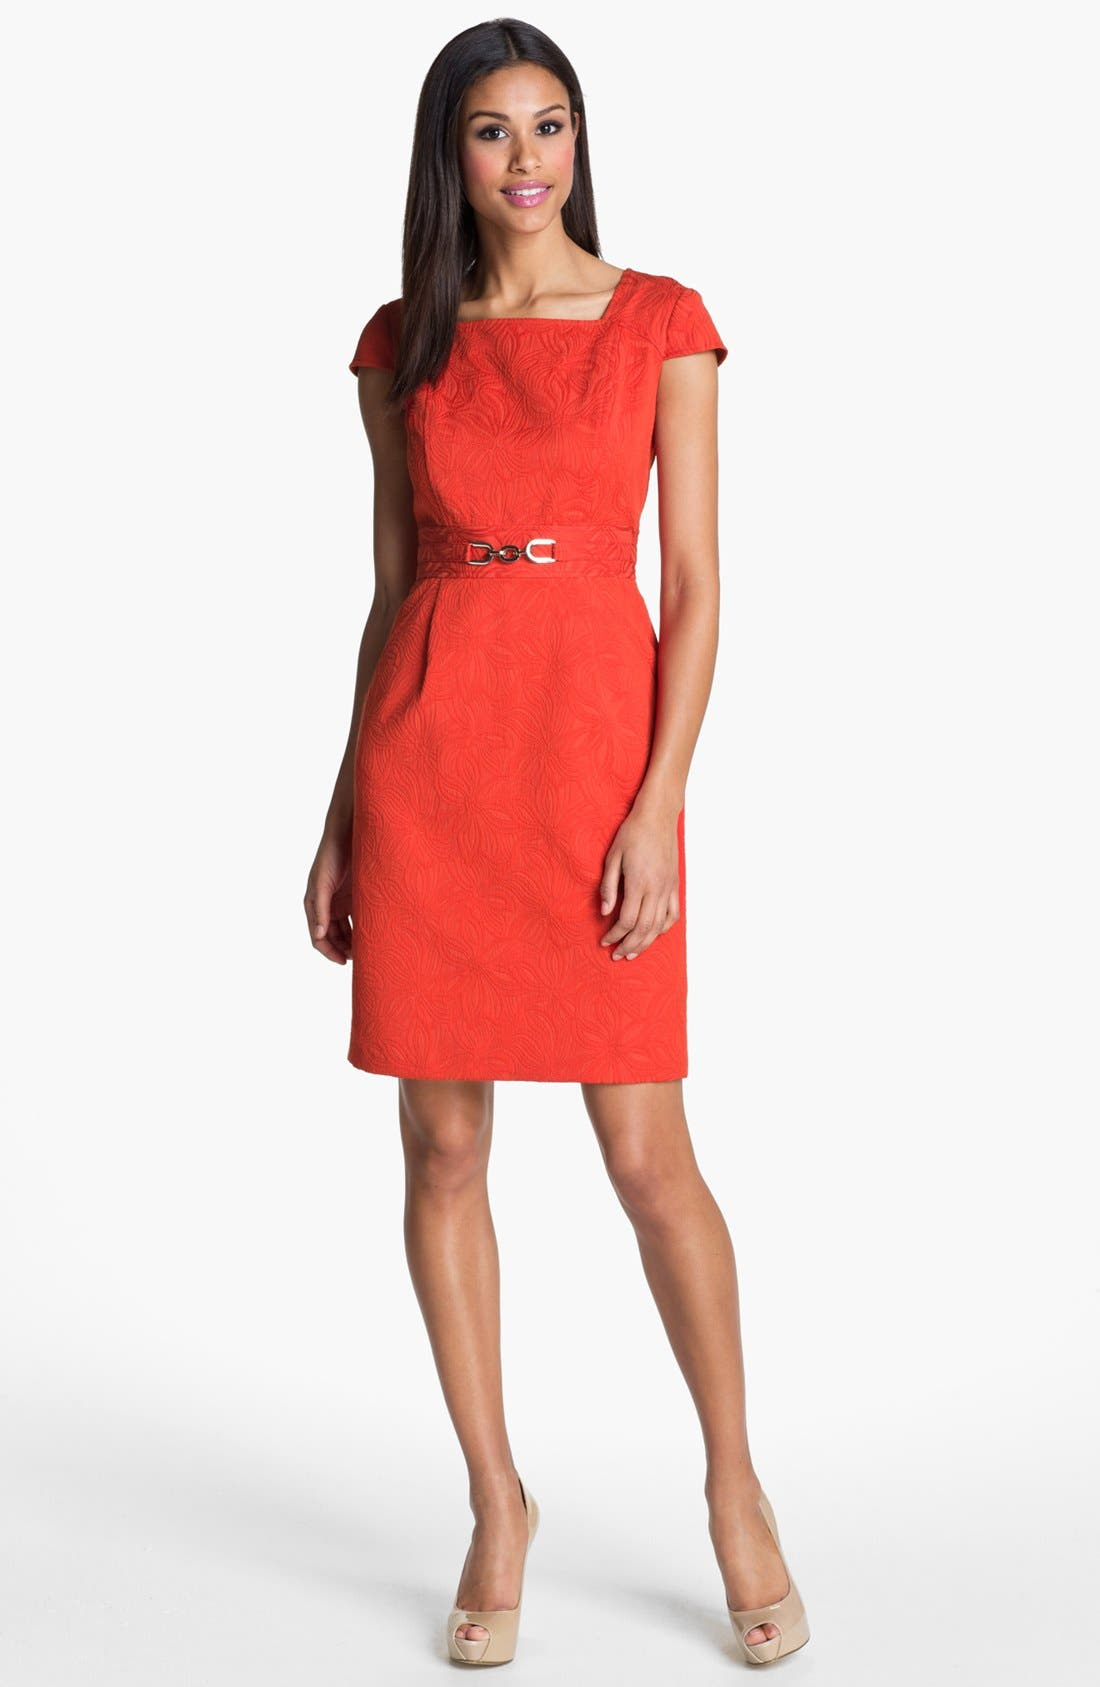 Alternate Image 1 Selected - Adrianna Papell Floral Jacquard Sheath Dress